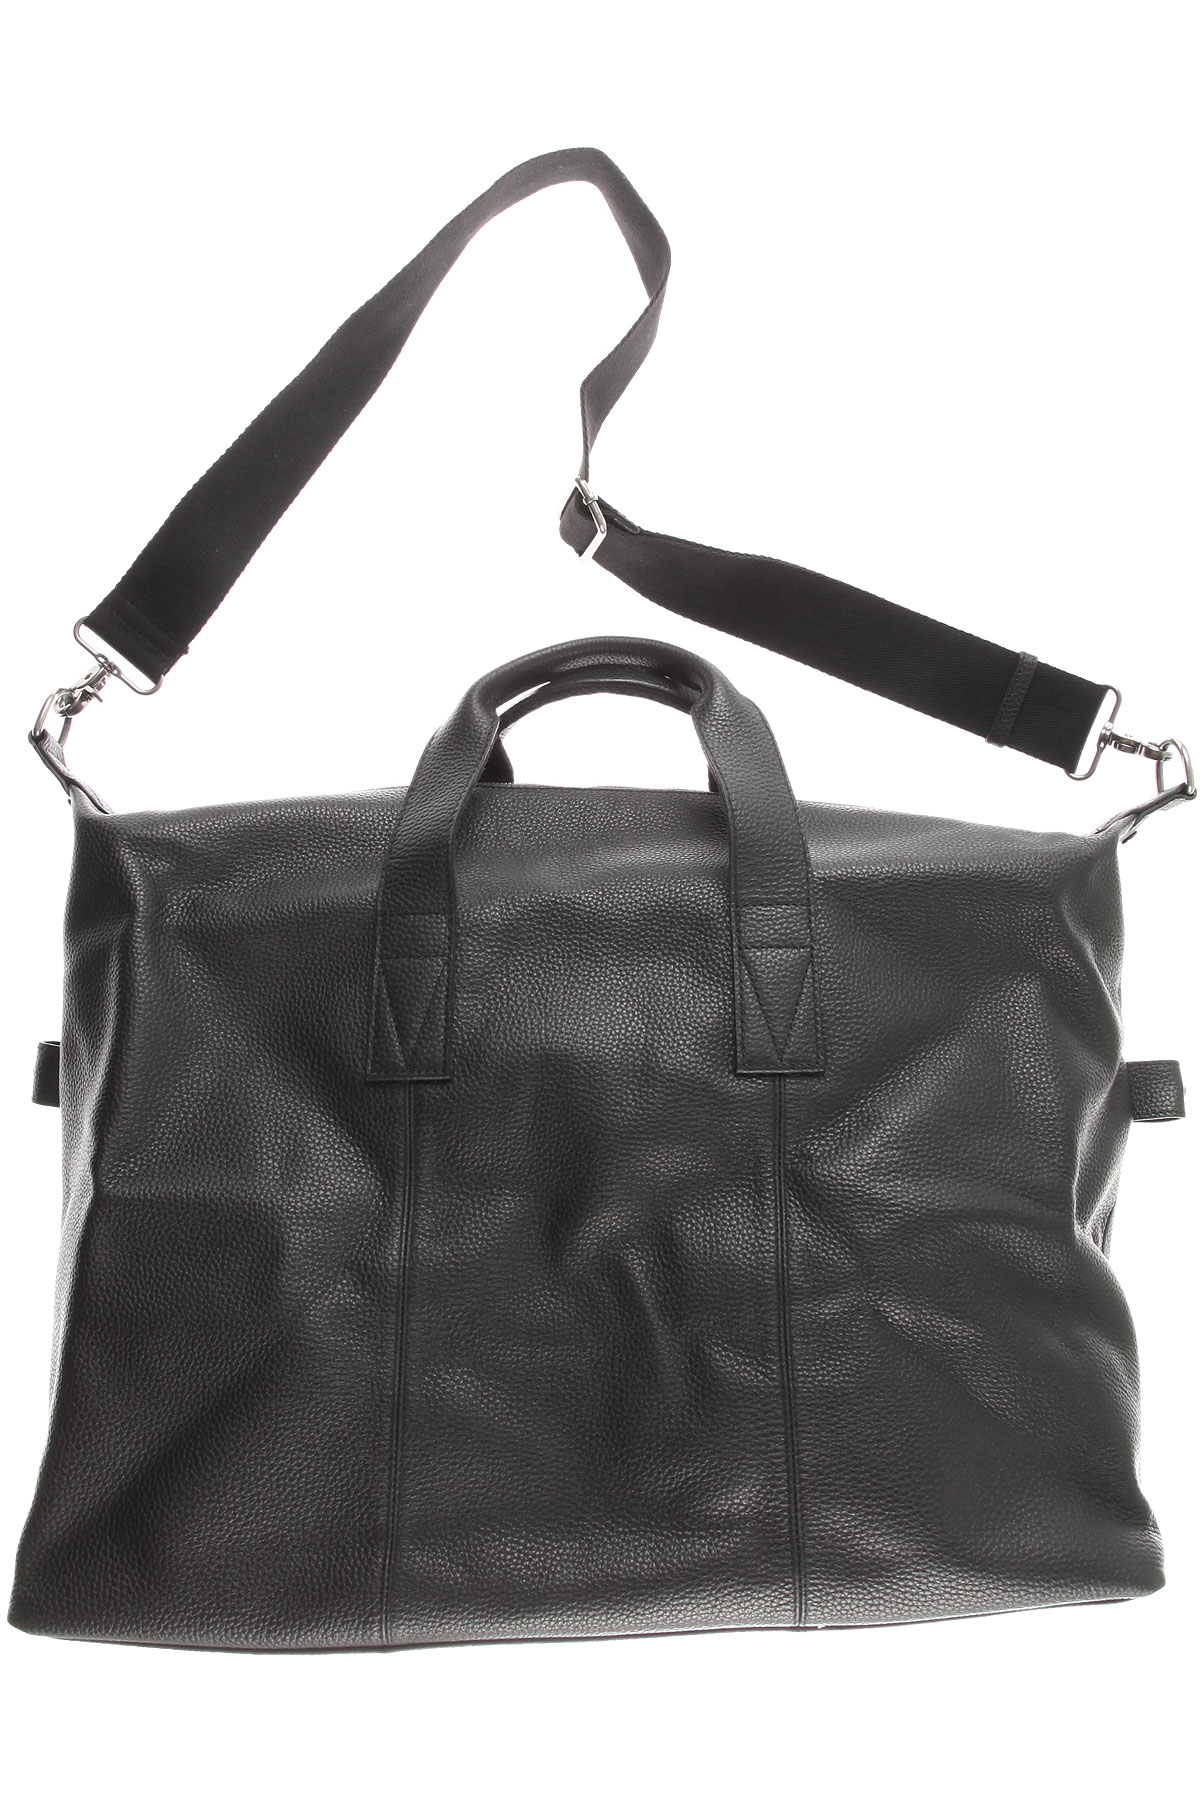 Image of Karl Lagerfeld Totes, Black, Leather, 2017